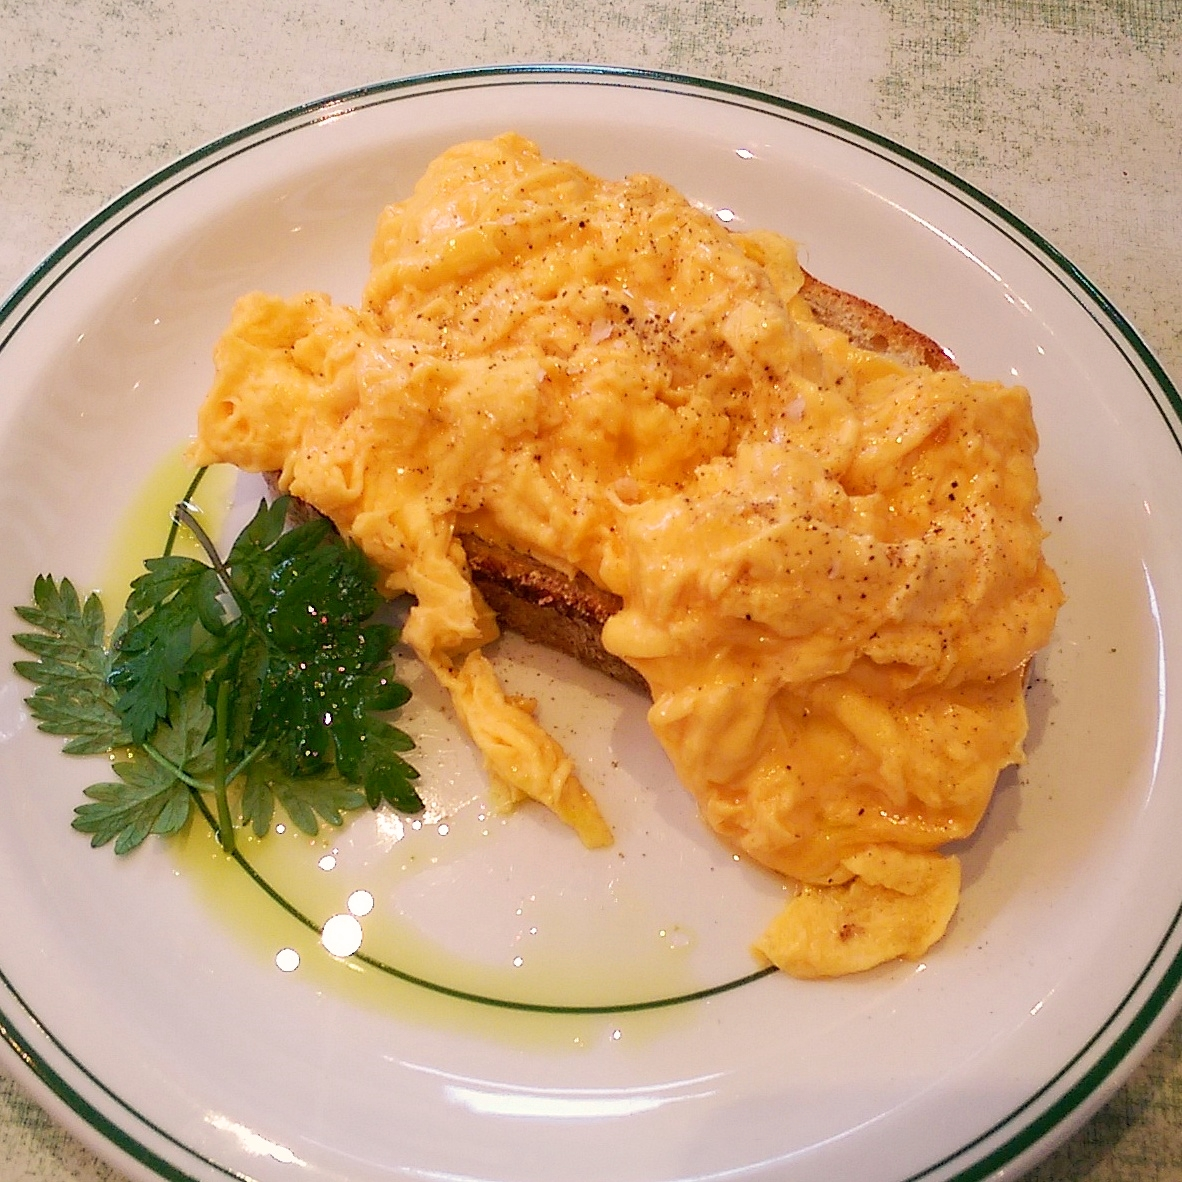 M1LK scrambled egg